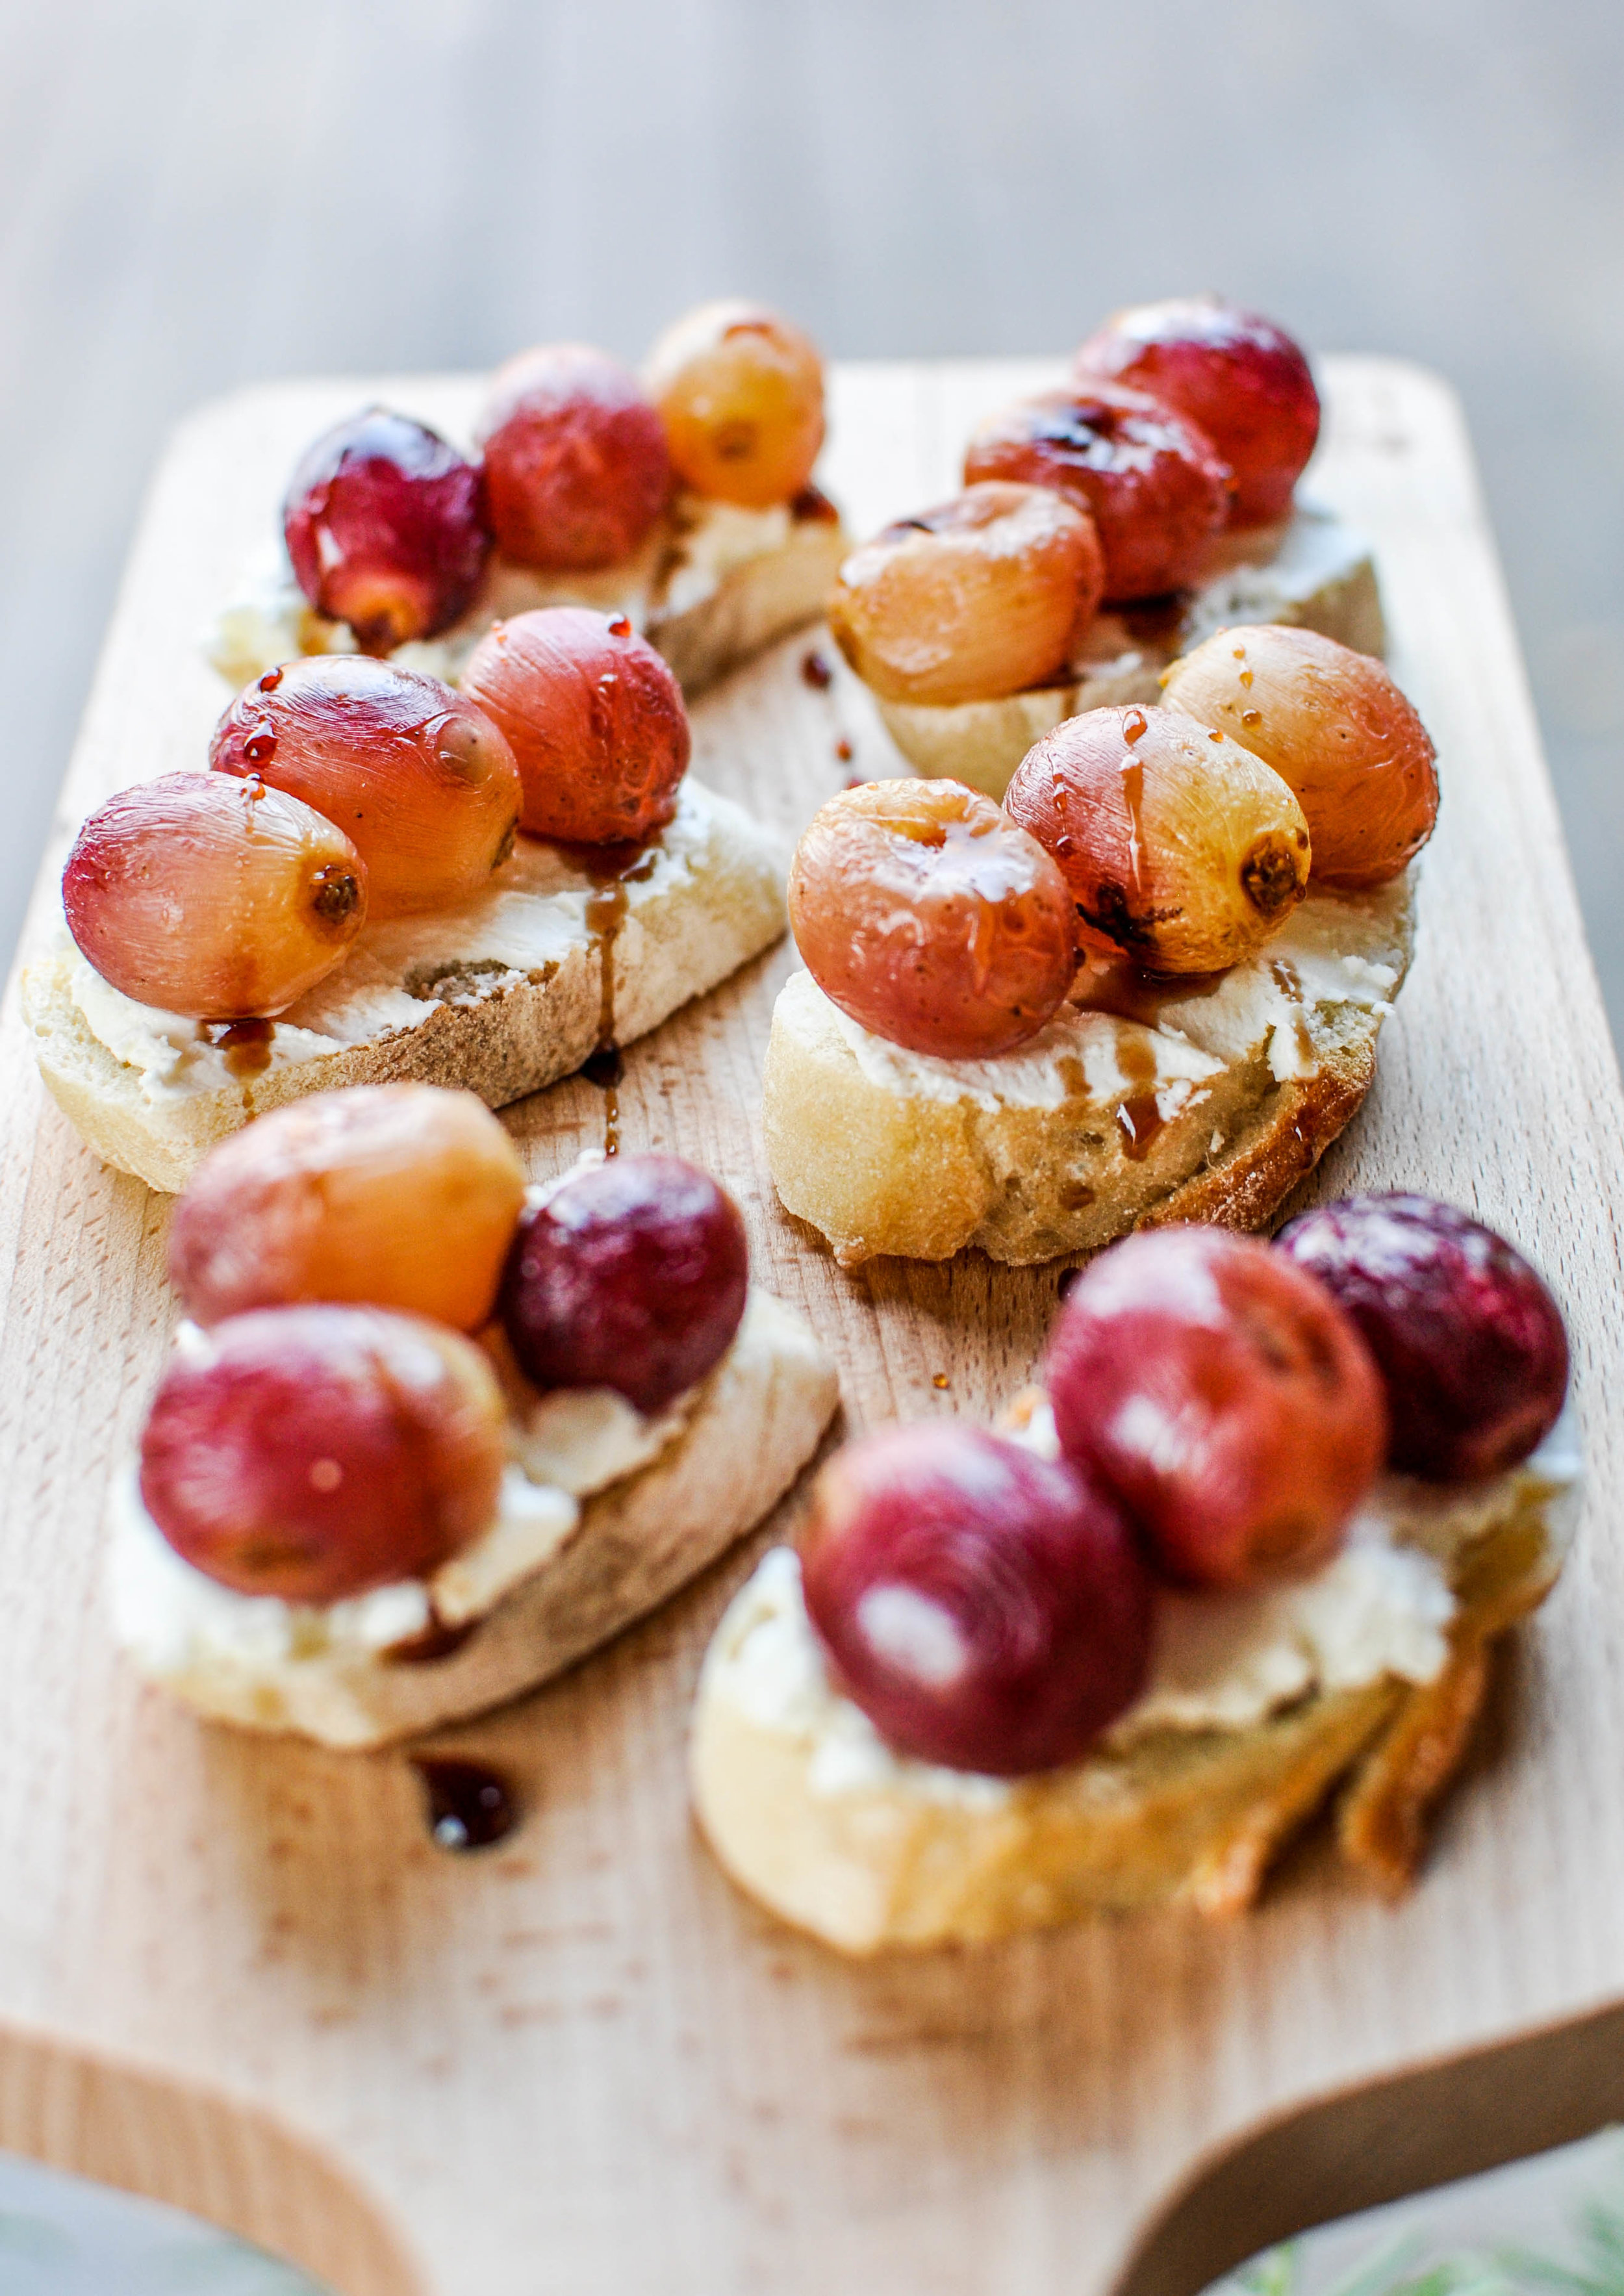 These roasted grape crostinis are an easy and tasty appetizer recipe that is perfect for a dinner party!